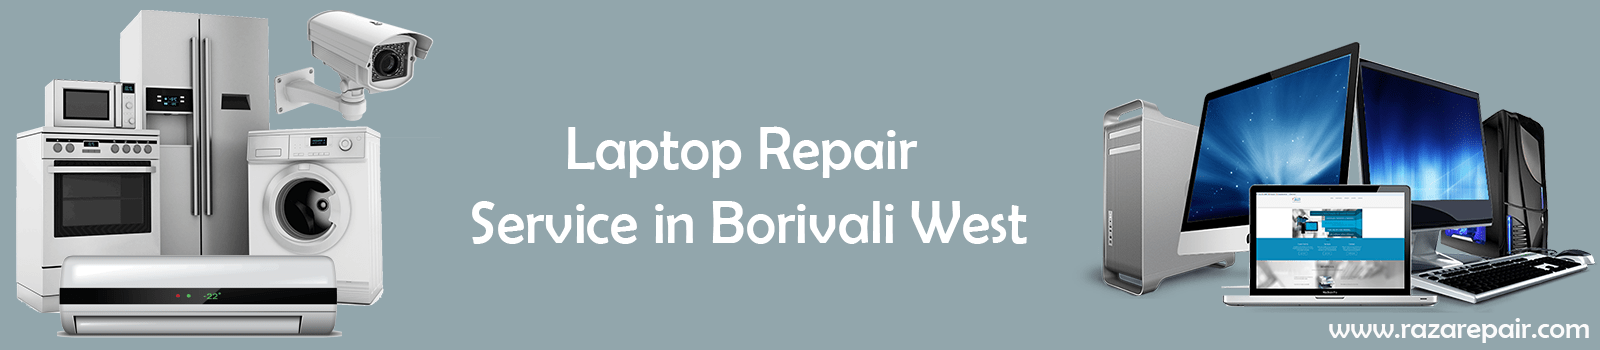 Laptop Repair Service in Borivali West | Call Now 8655112626